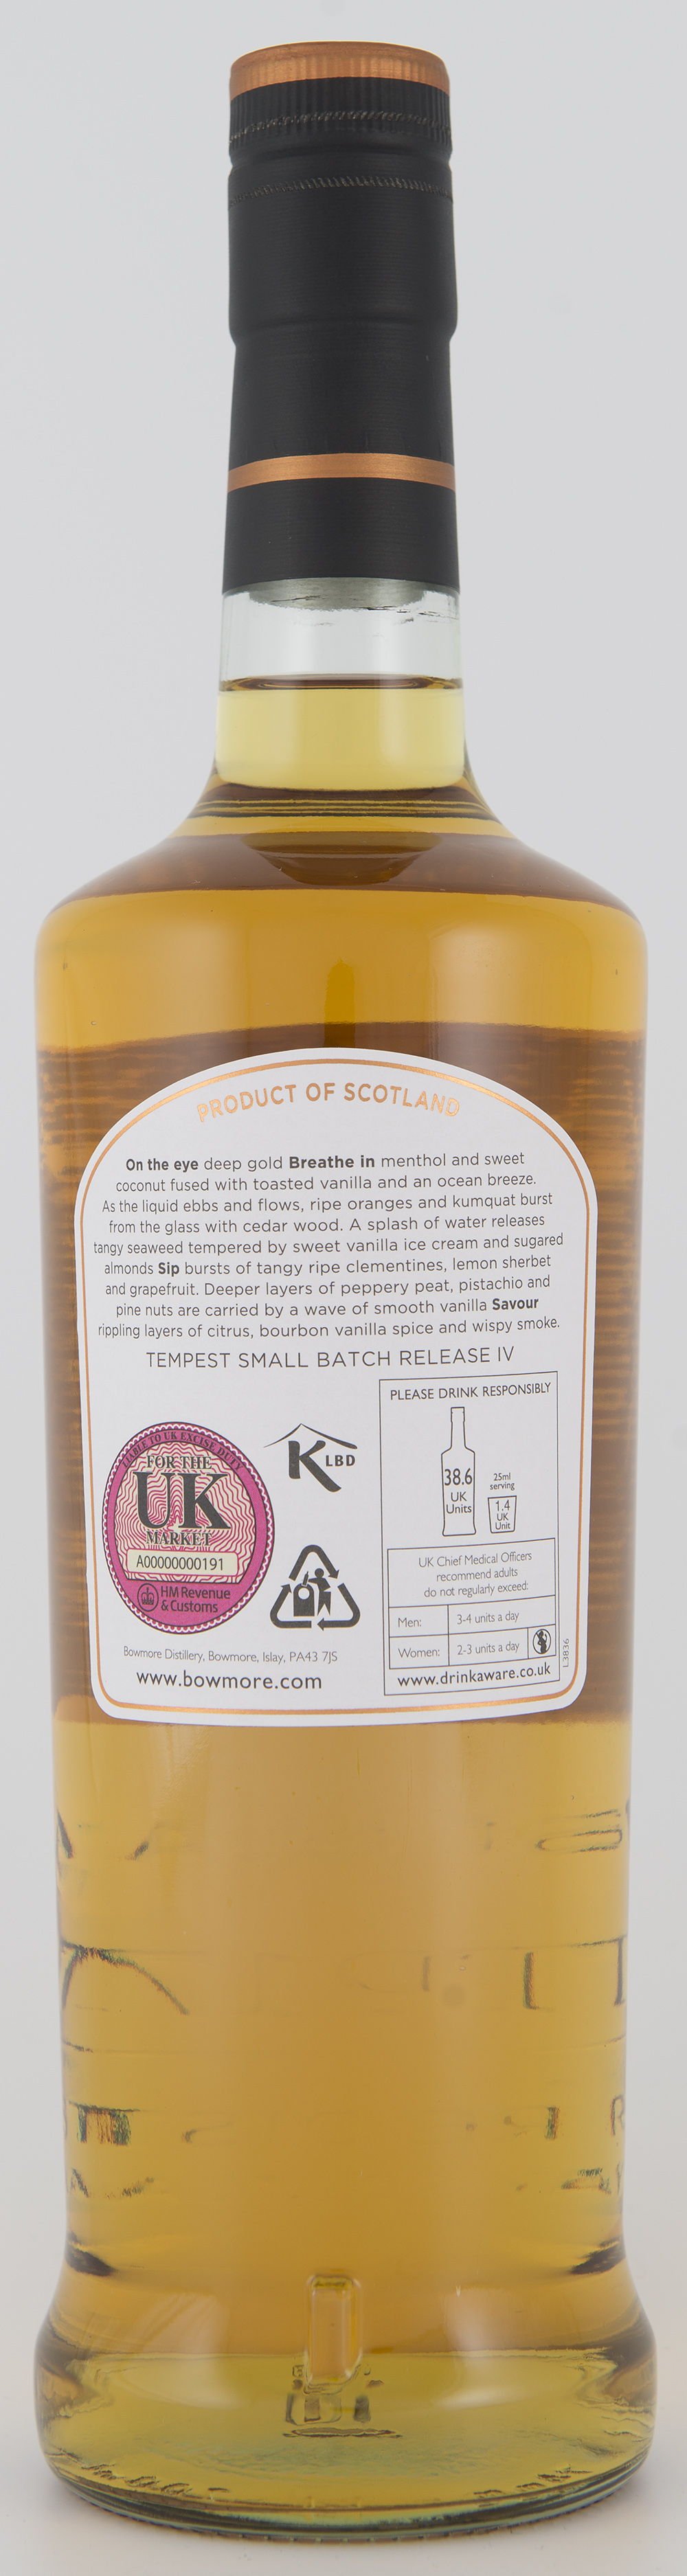 Billede: DSC_3208 Bowmore Tempest Batch IV - bottle back.jpg